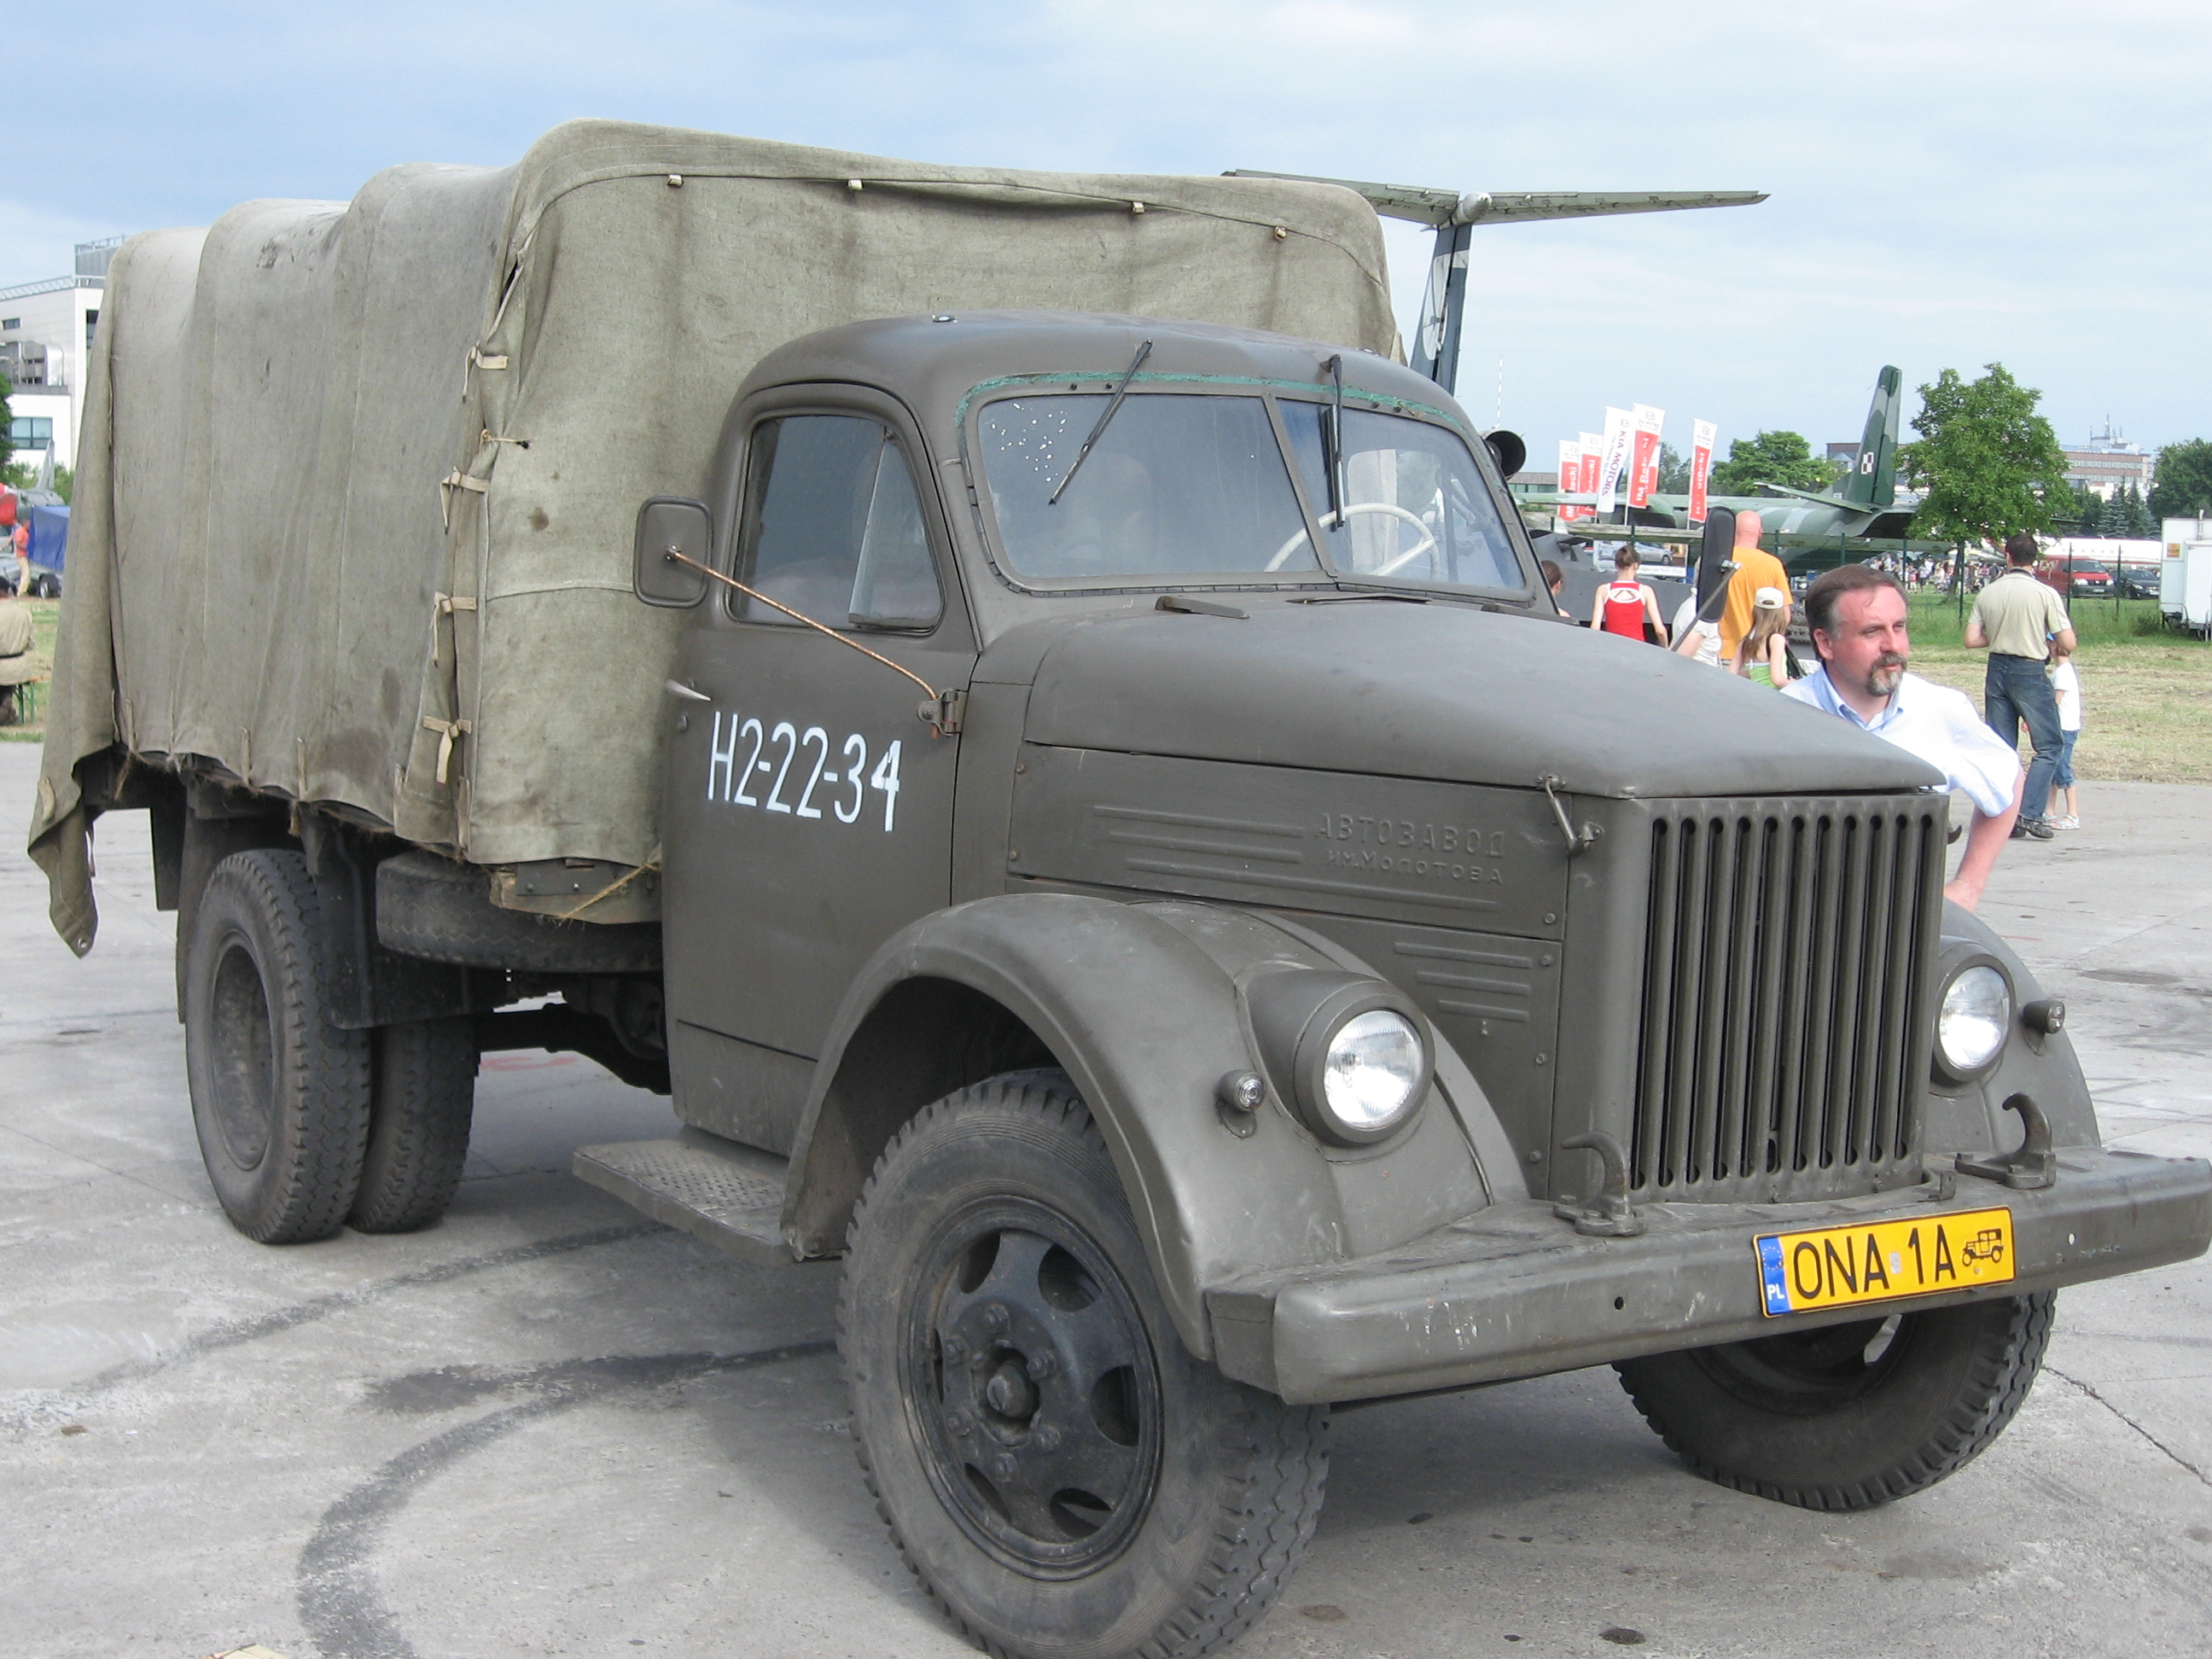 File:GAZ-51 during the VII Aircraft Picnic in Kraków.jpg ...